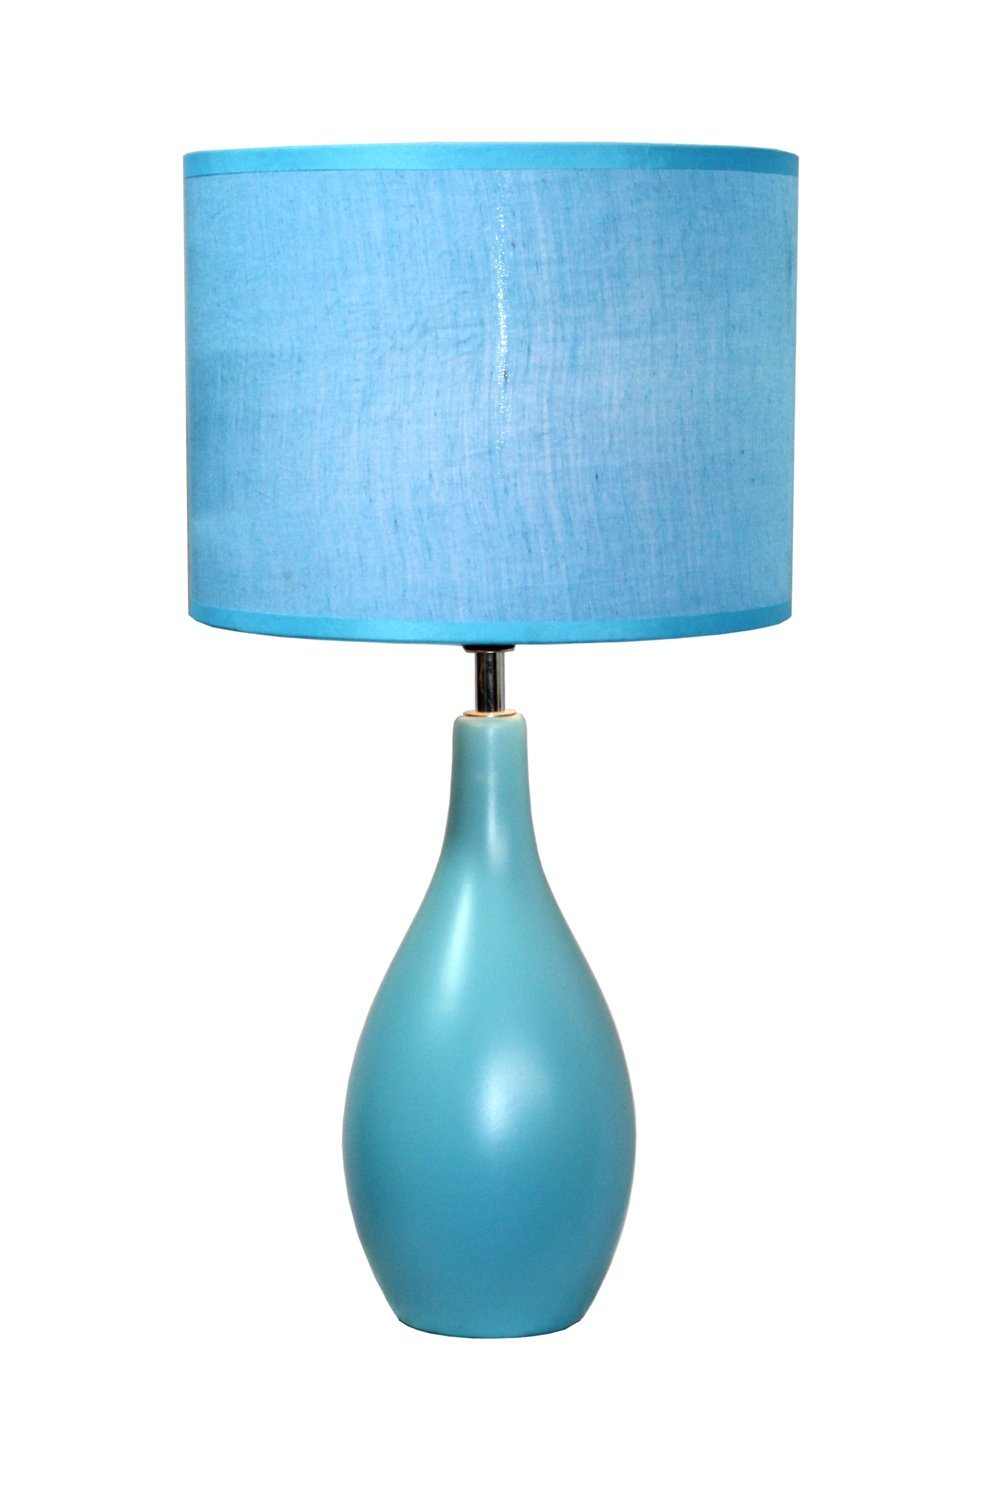 of also with lamps table floor lamp fresh aqua furniture catalog